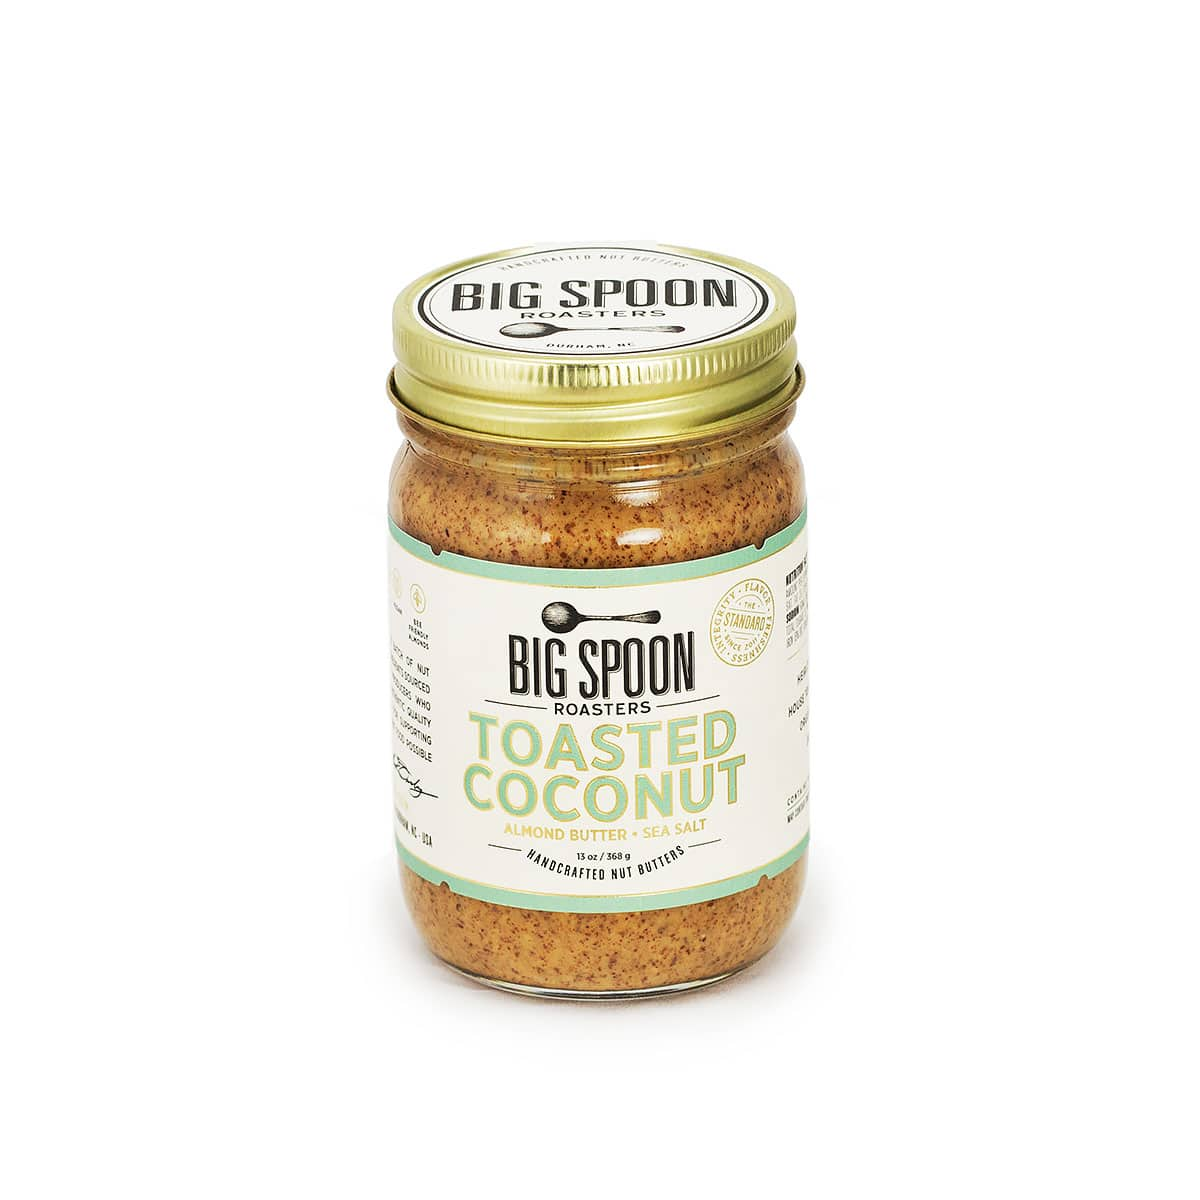 Big Spoon Roasters Announces New Packaging With 30% More Nut Butter Per Jar